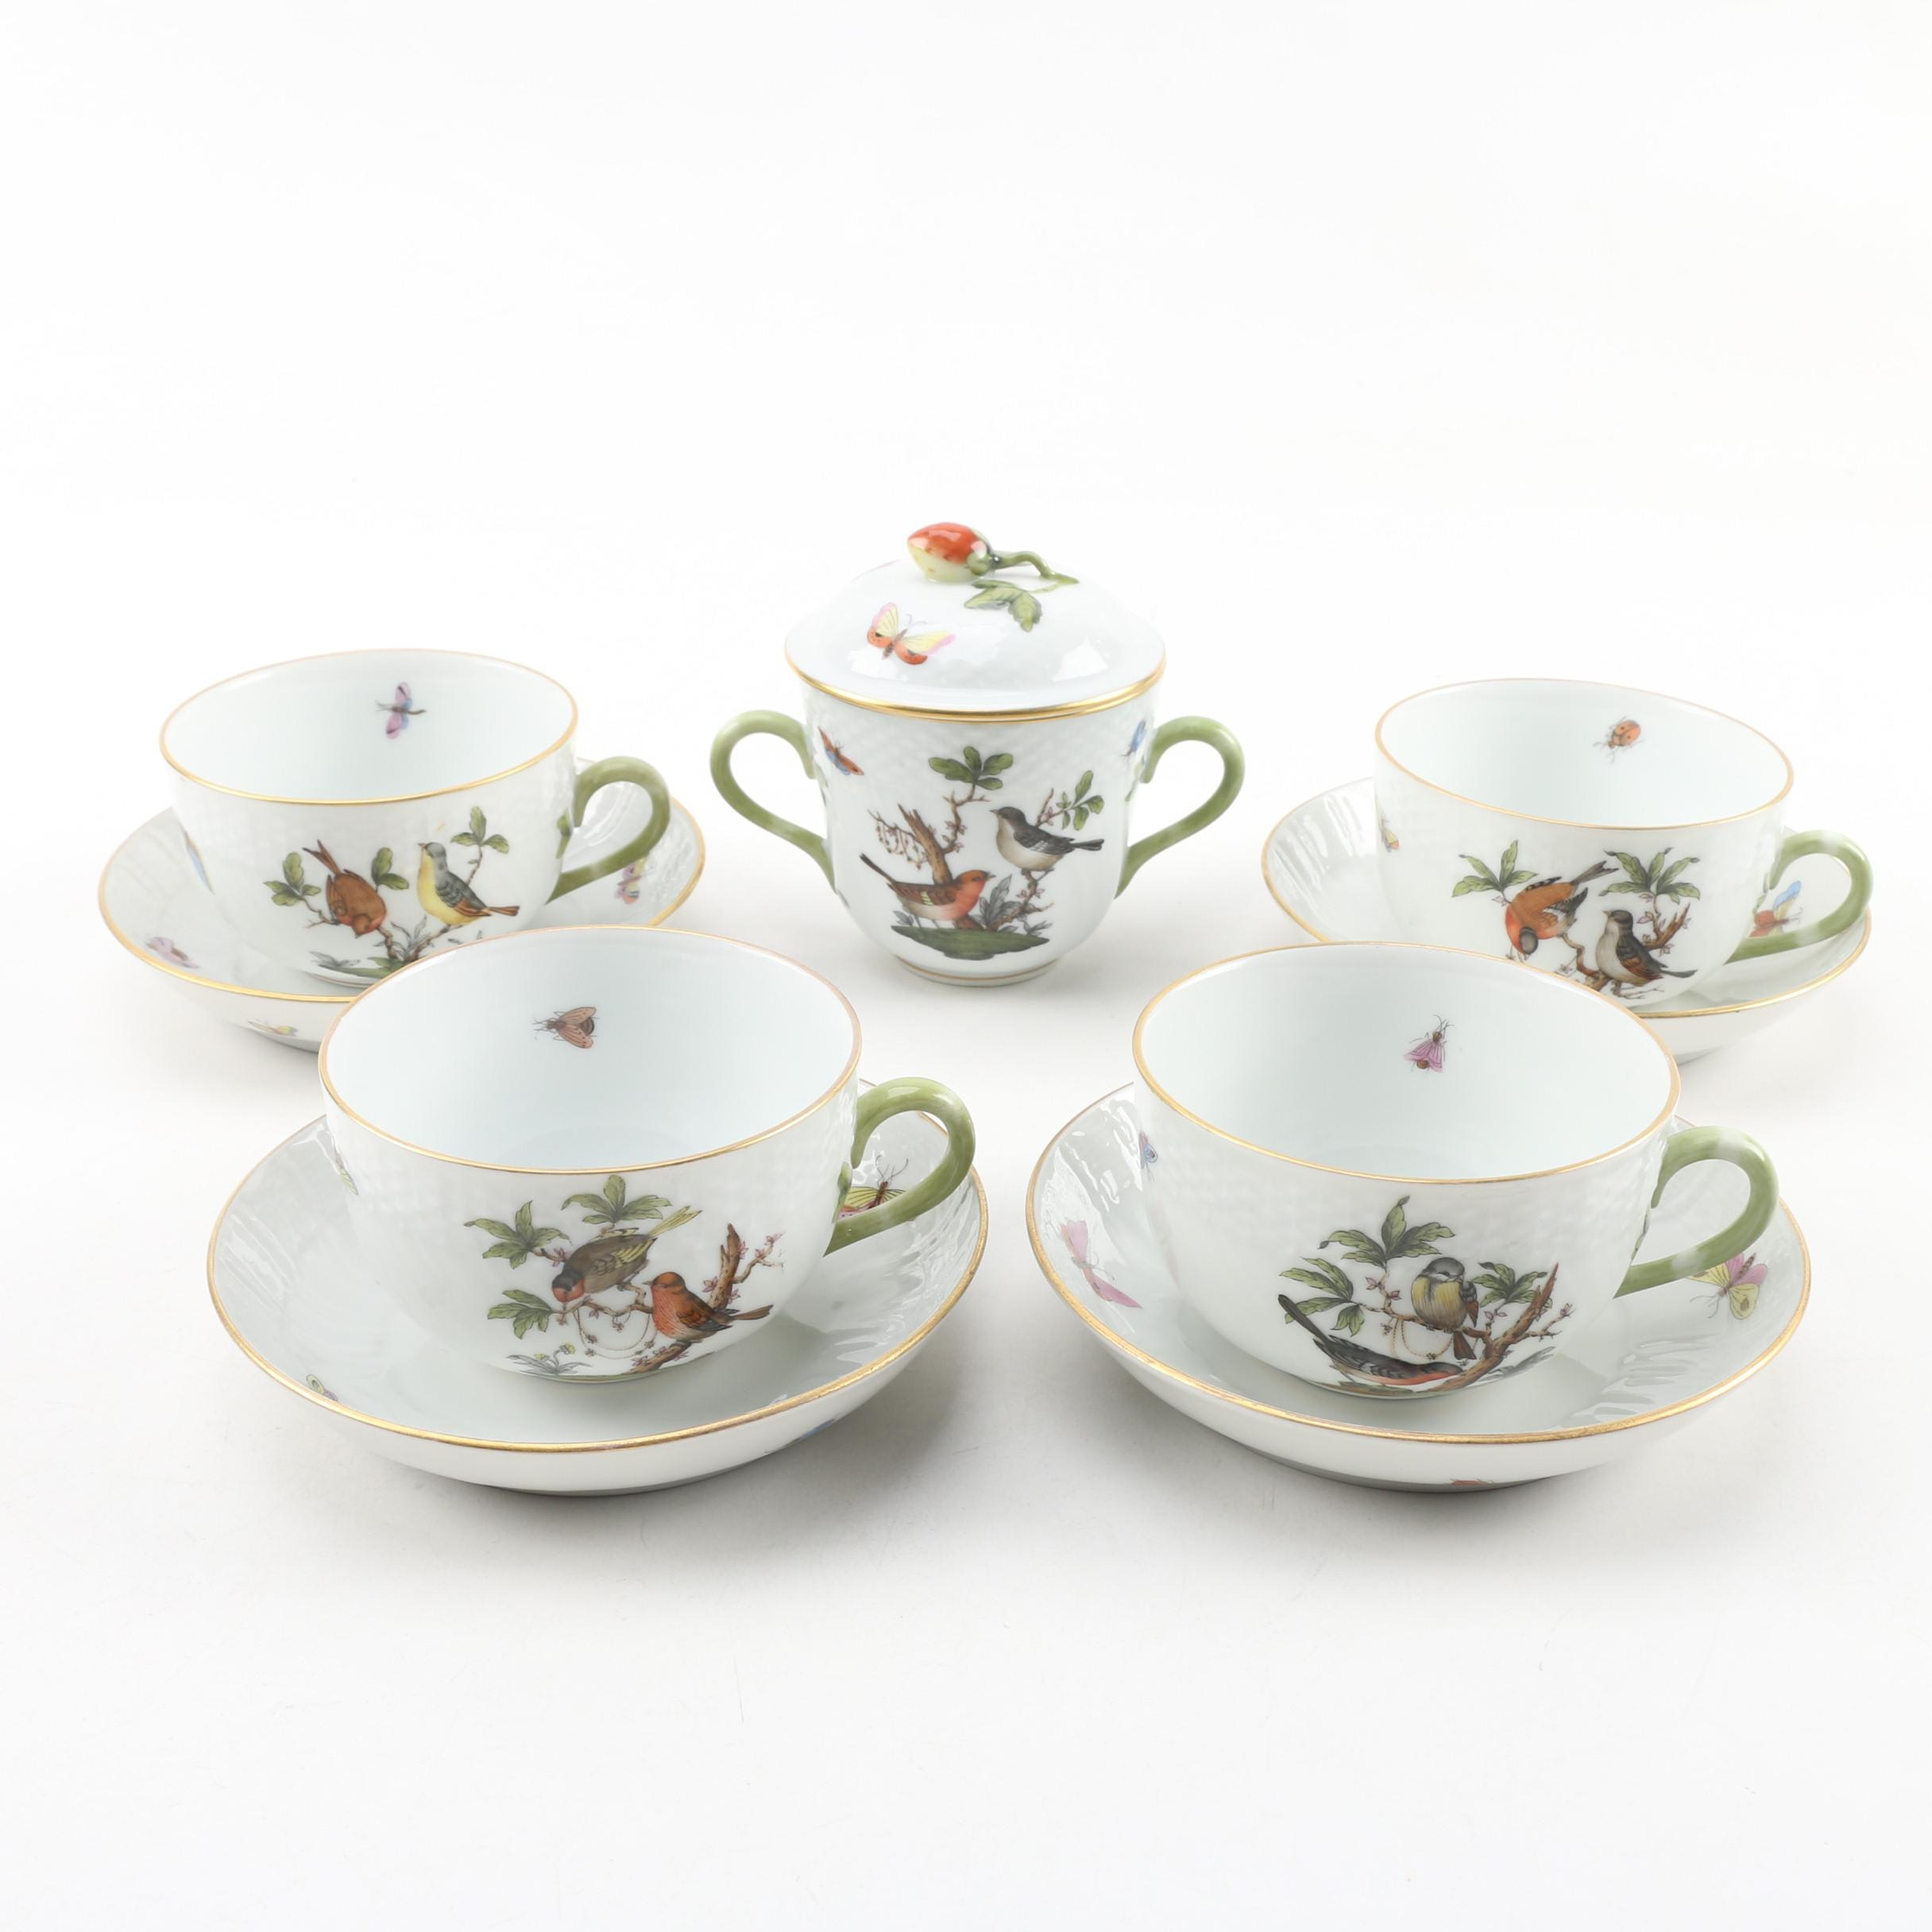 "Herend Hungary ""Rothschild Bird"" Porcelain Teacups, Saucers and Sugar Bowl"